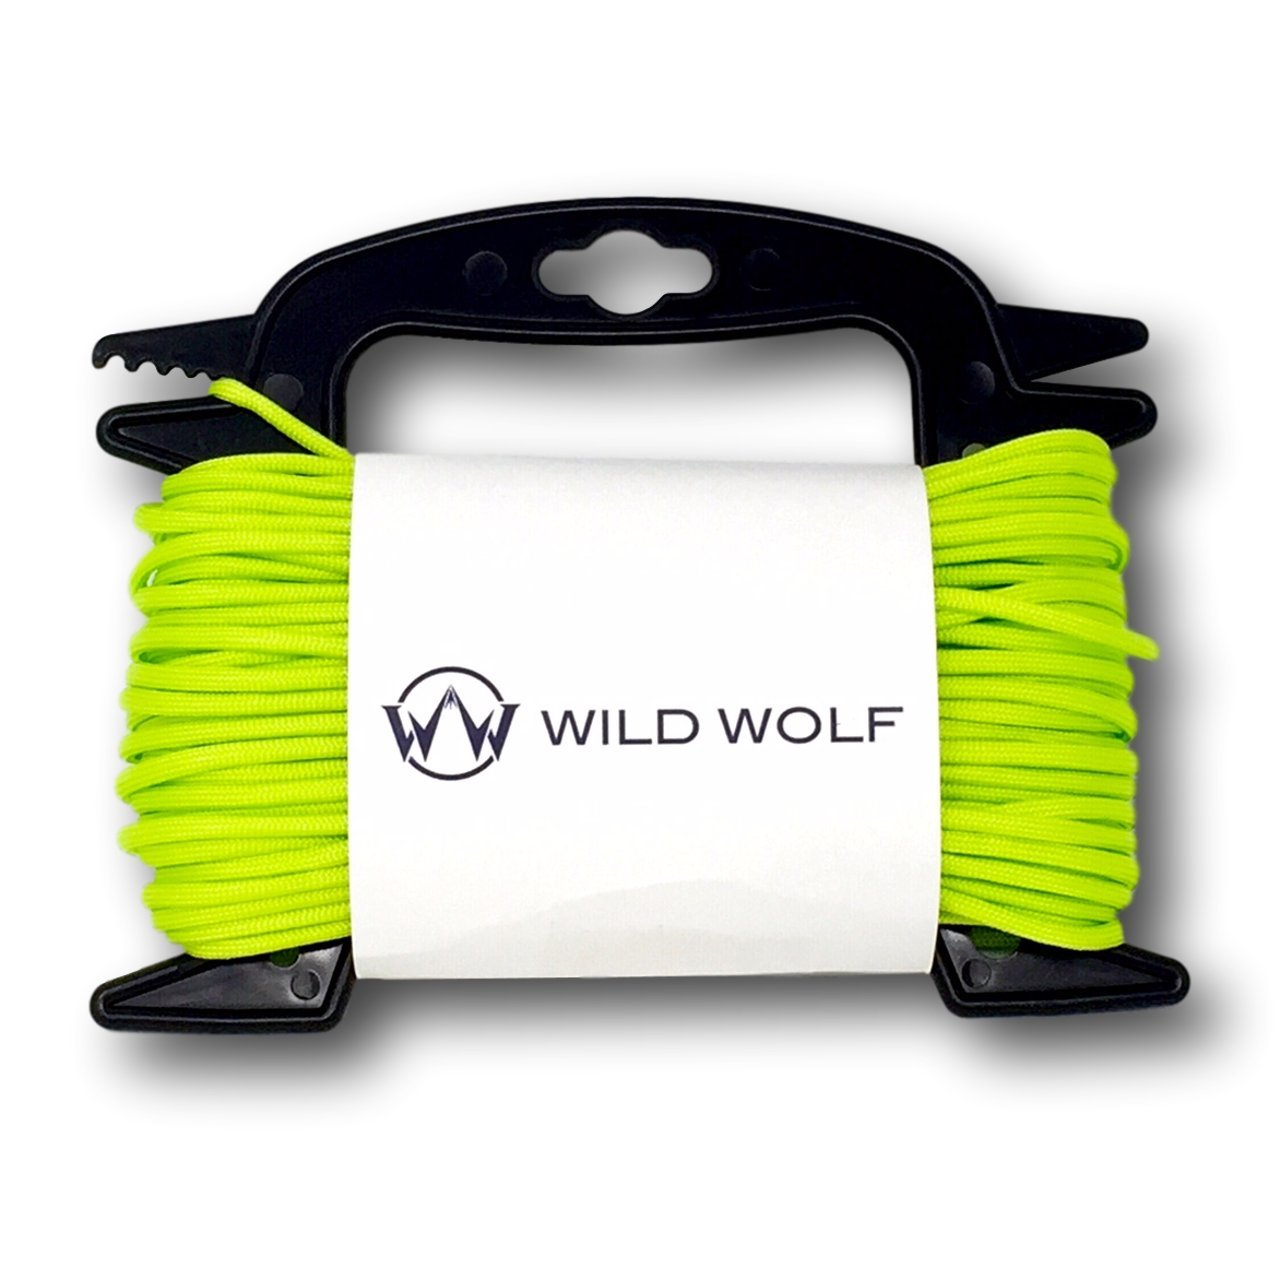 100 Feet of Paracord by Wild Wolf Pack On Winder for Tangle-Free 550 Lb Parachute Survival Craft Cord